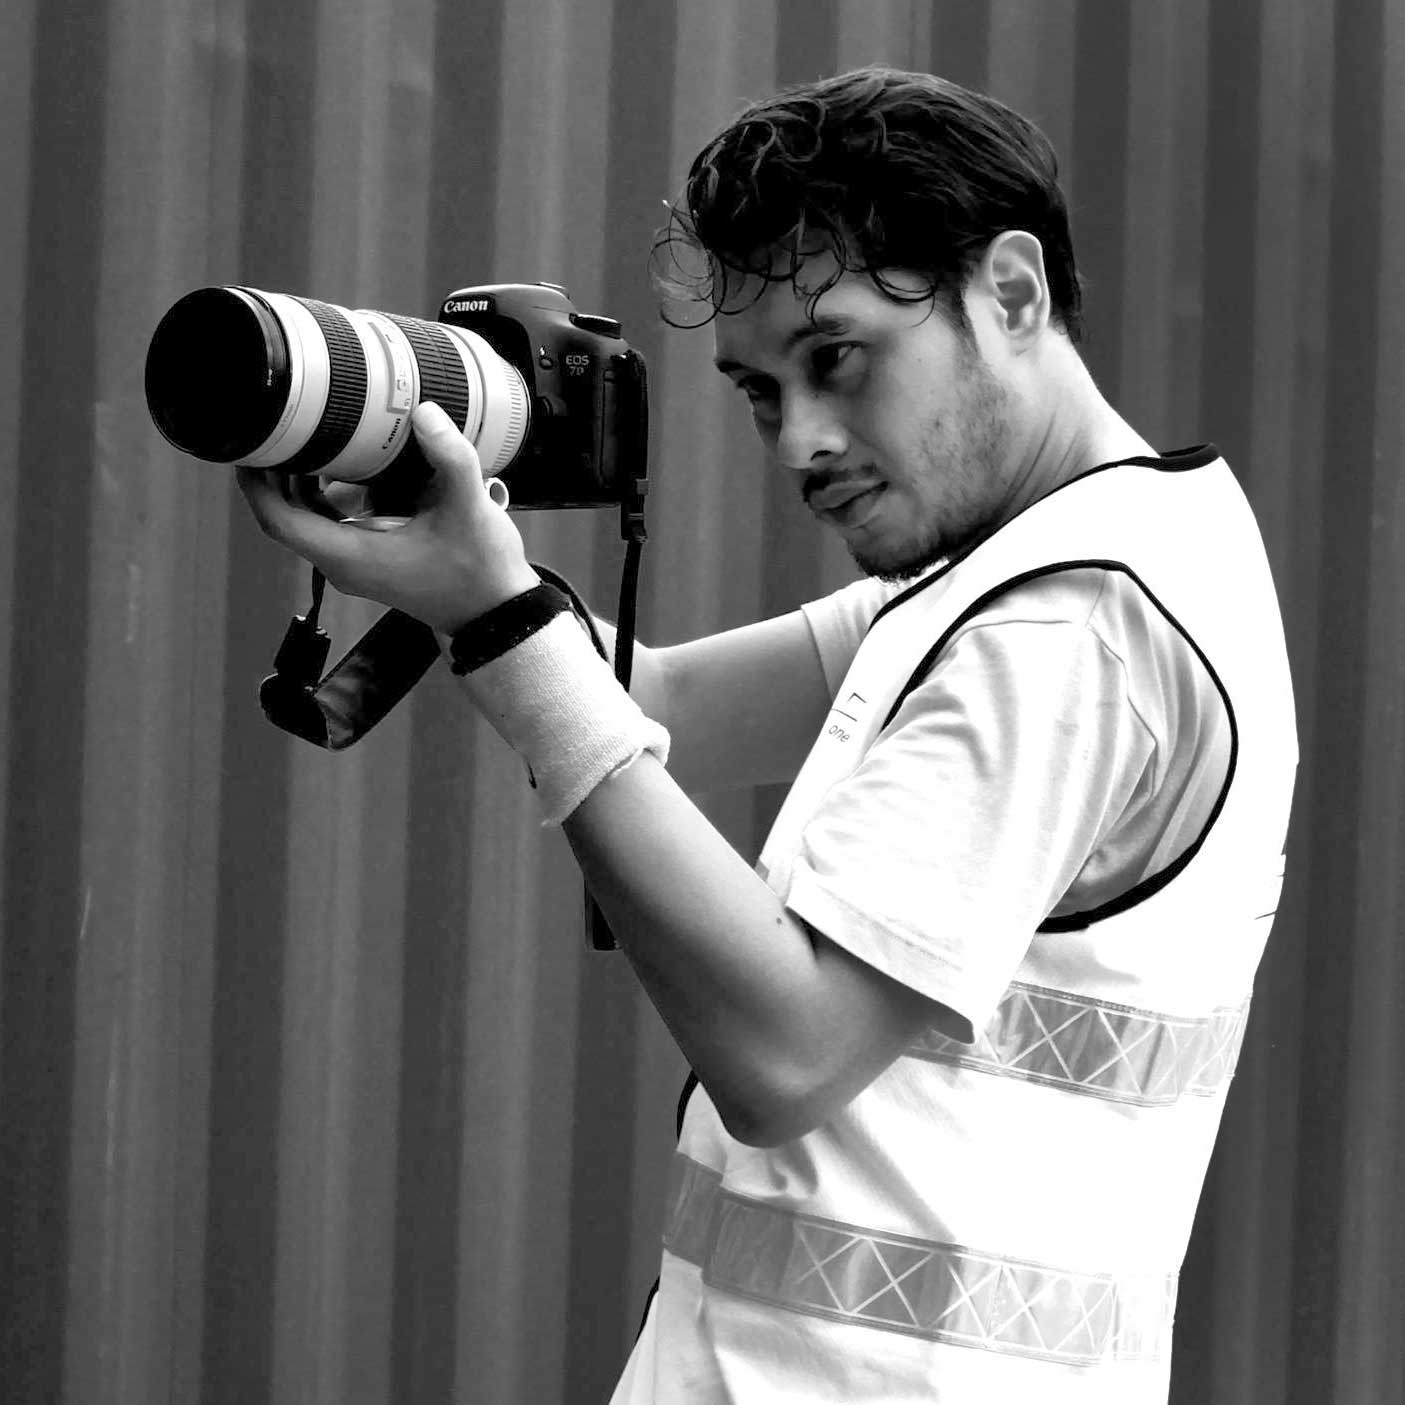 travel photography workshop, street photography workshop, learn photography, flash photography, weekend photography workshop, photography courses, school of photography Singapore, Singapore school of photography, Singapore photography school, photography lessons, exclusive workshops, exclusive courses, advanced photography courses, advanced photography workshops, beginner photography lessons, basic photography courses, basic photography workshops, Alan Lim, Singapore Photographer, awards winning, photography workshop, night photography workshop, documentary photography course, photography lessons, private photography lessons, photography instructor, photography teacher, photography coach